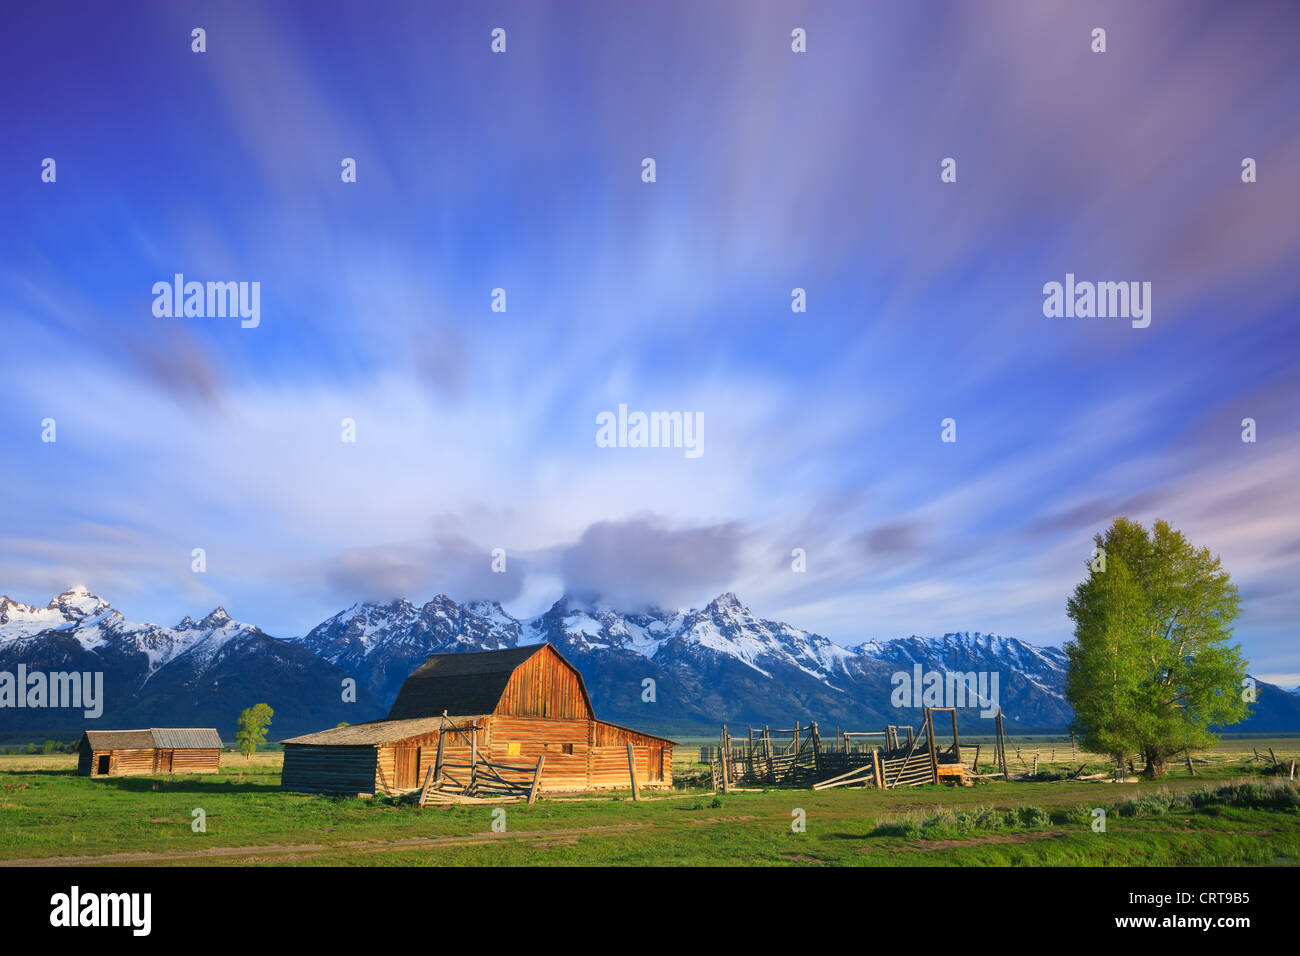 T.A Moulton Barn in Grand Teton National Park, Wyoming, USA - Stock Image